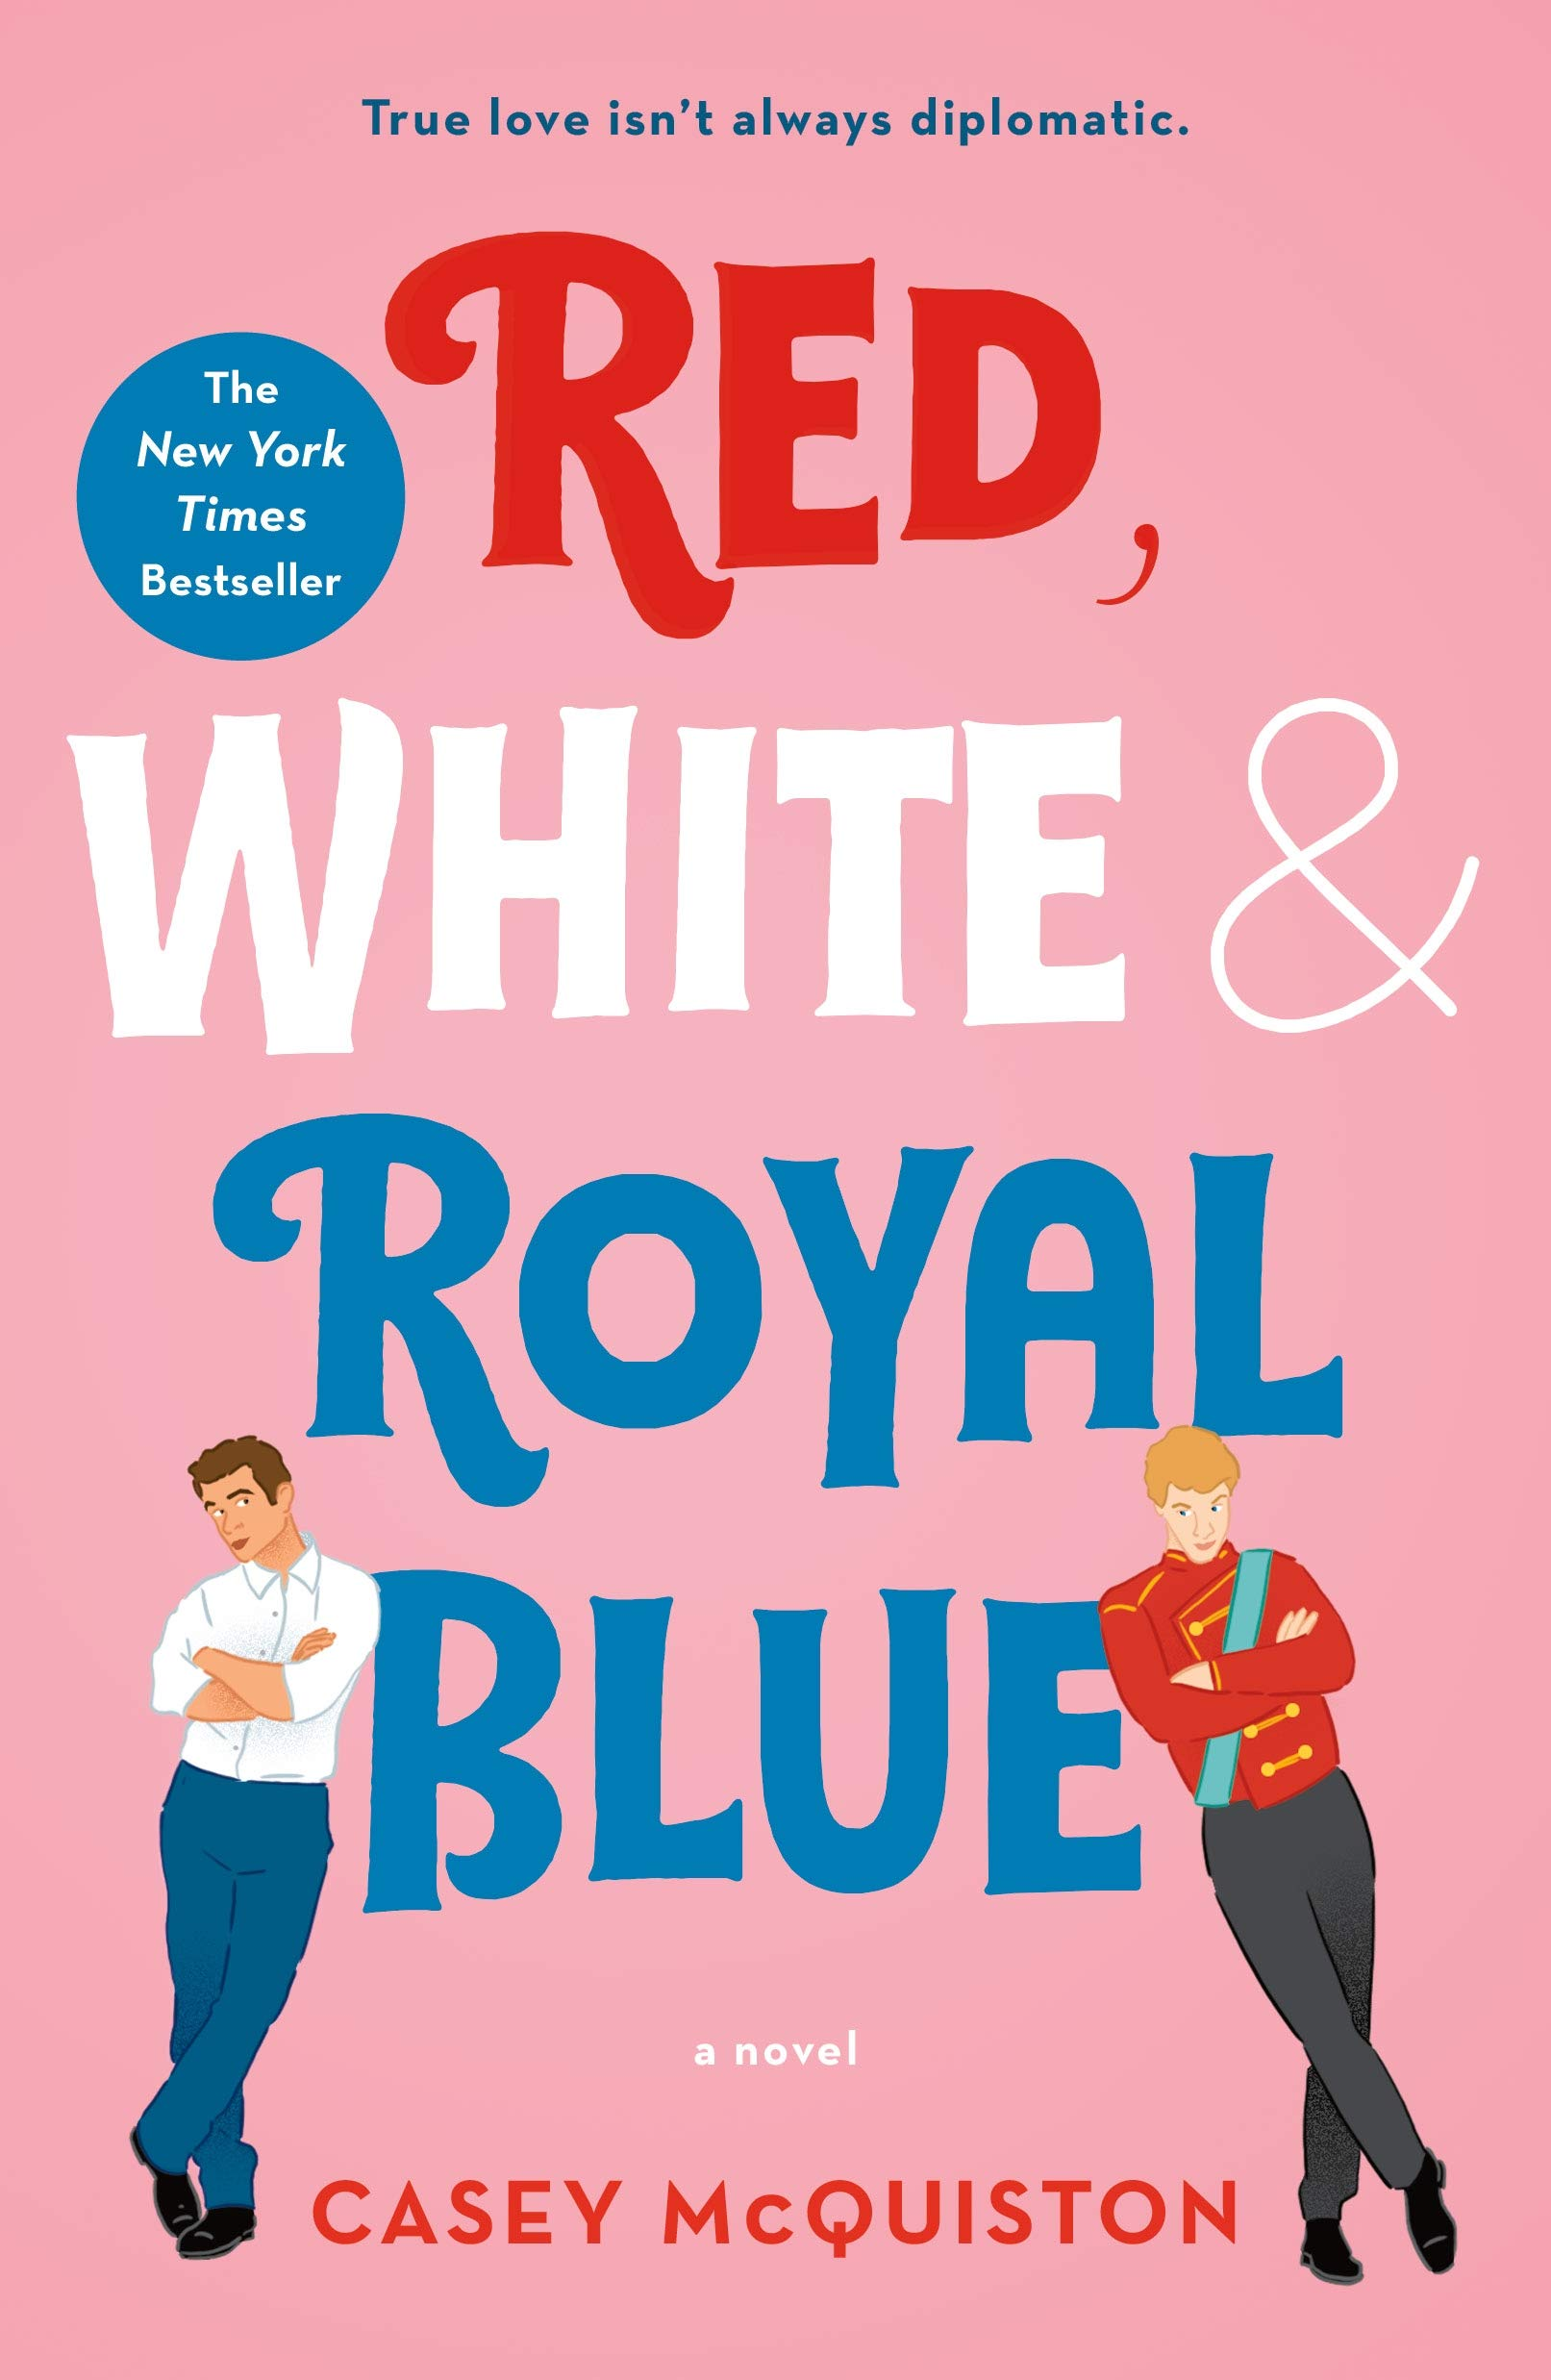 Resultado de imagen de red white and royal blue""